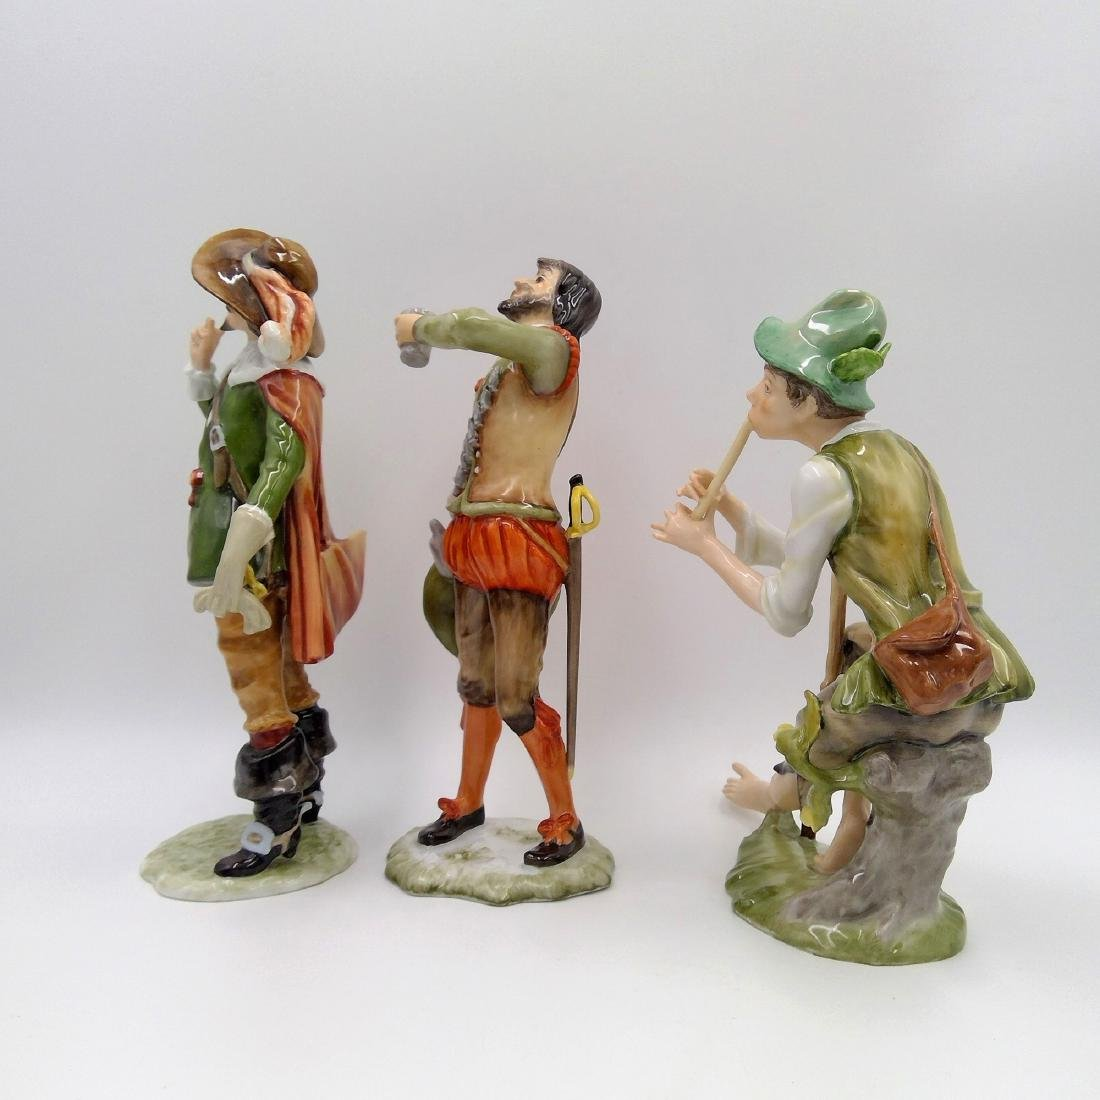 GROUP OF 3 KAISER GERMAN PORCELAIN FIGURINES - 2